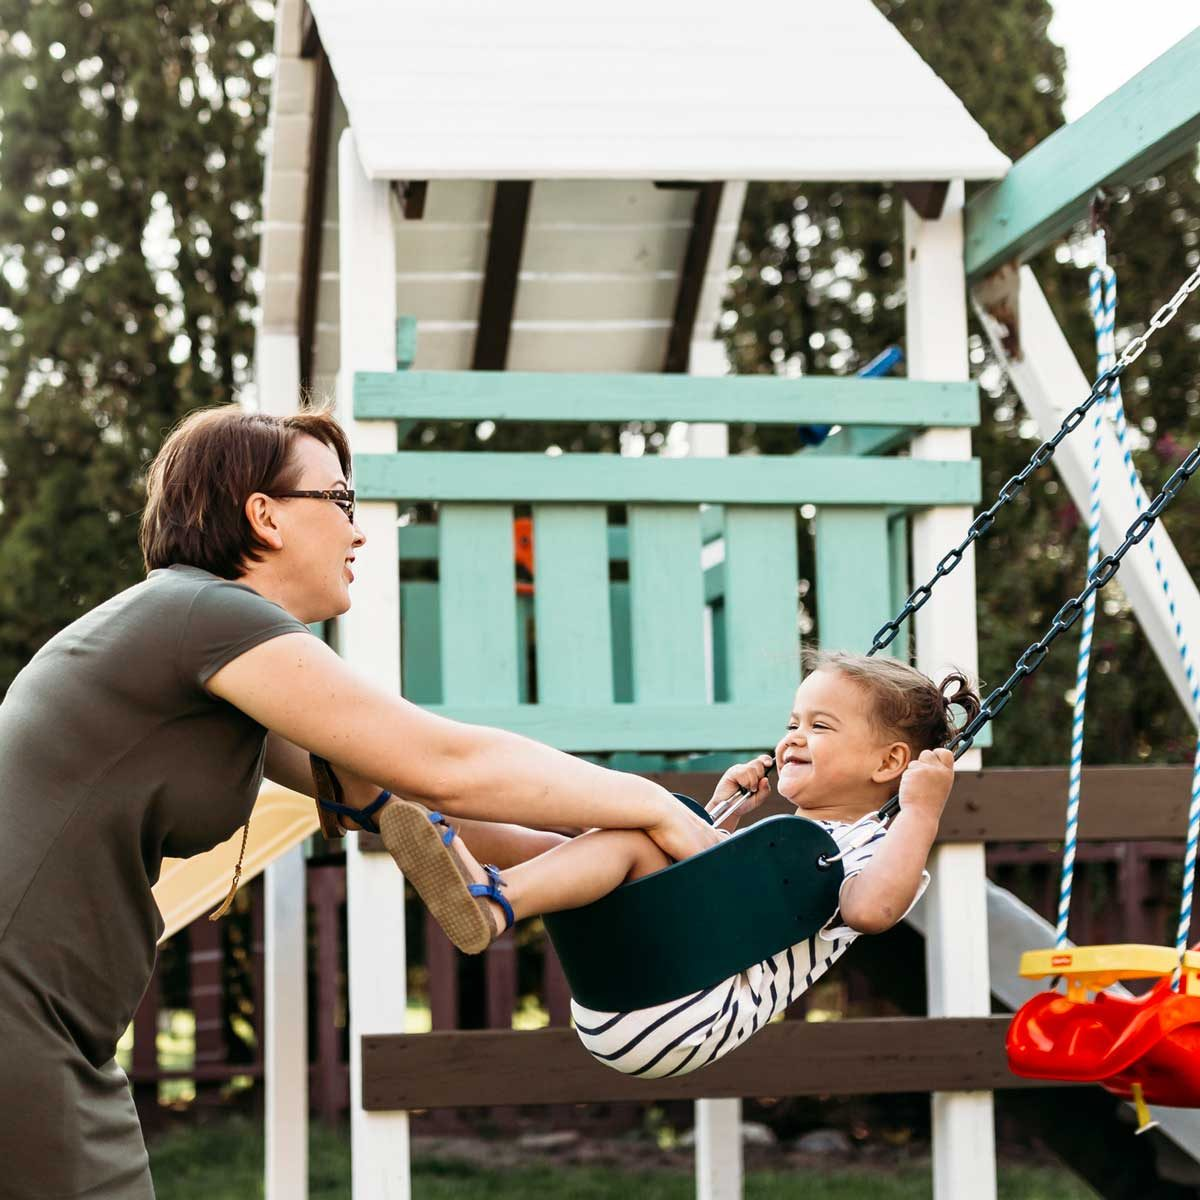 Playing On Swing Set Gettyimages 961332858